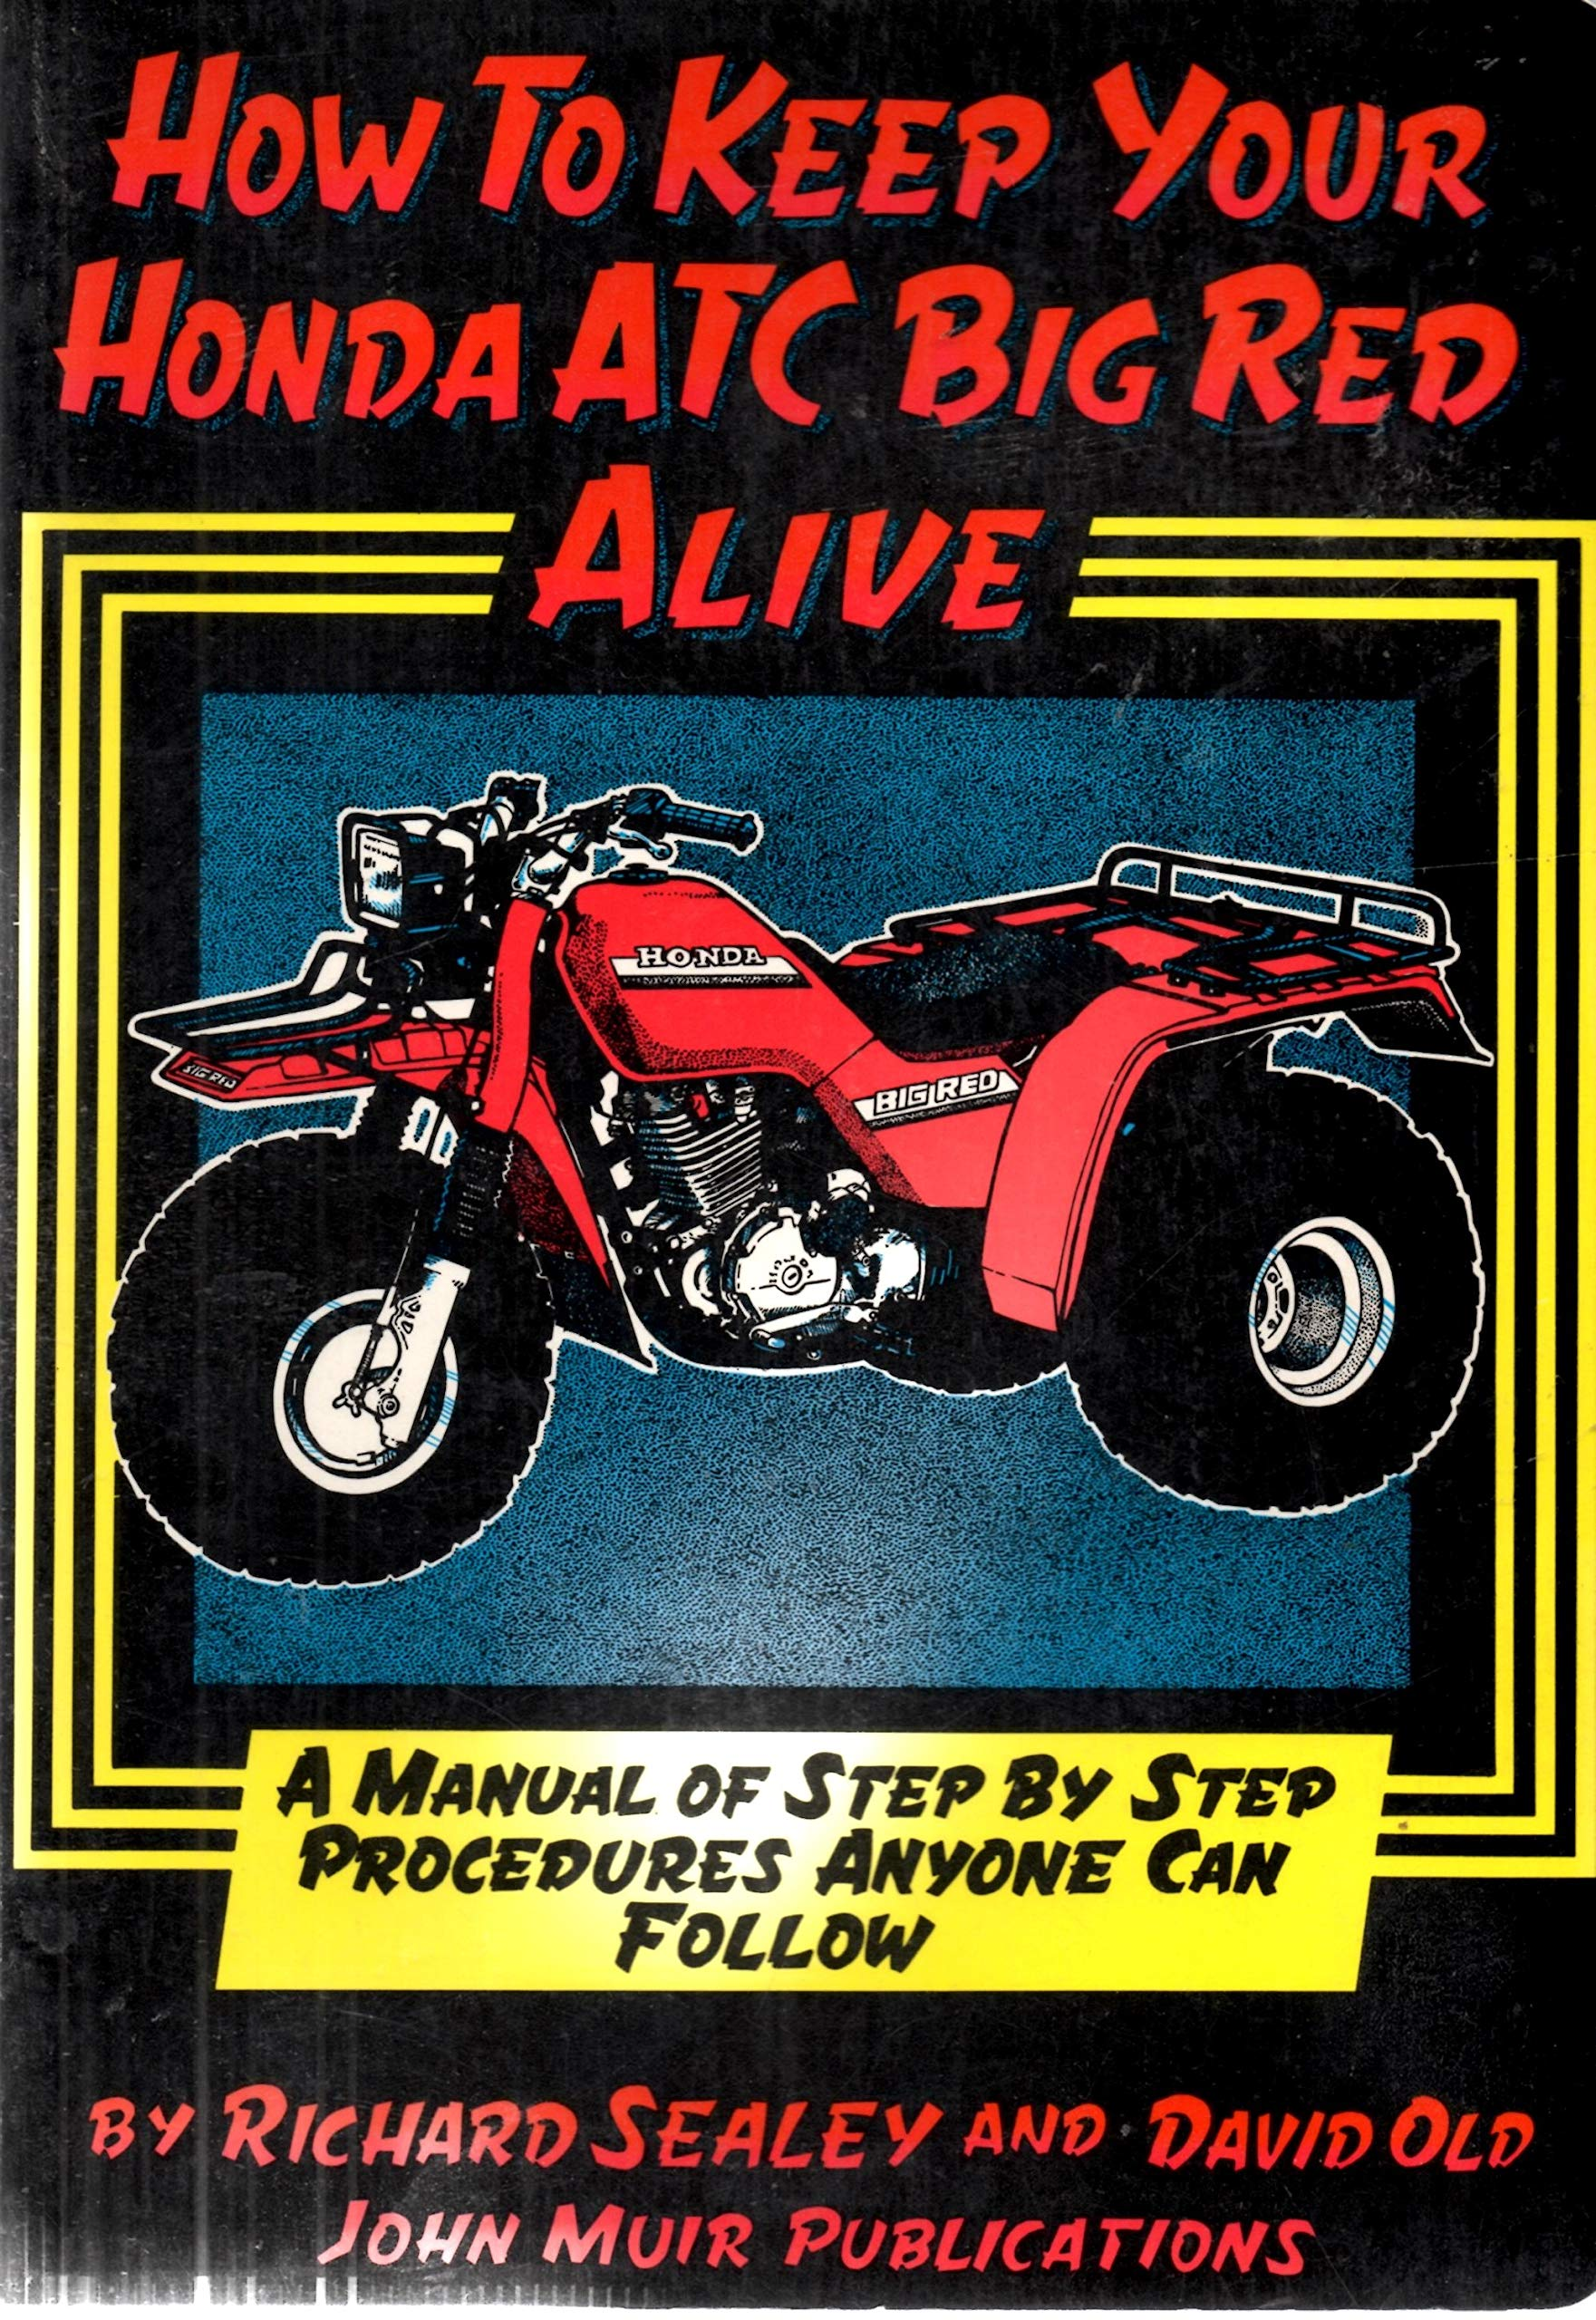 How to Keep Your Honda Atc Big Red Alive: A Manual of Step by Step  Procedures Anyone Can Follow: Richard Sealey, David Old: 9780912528458:  Books - Amazon.ca